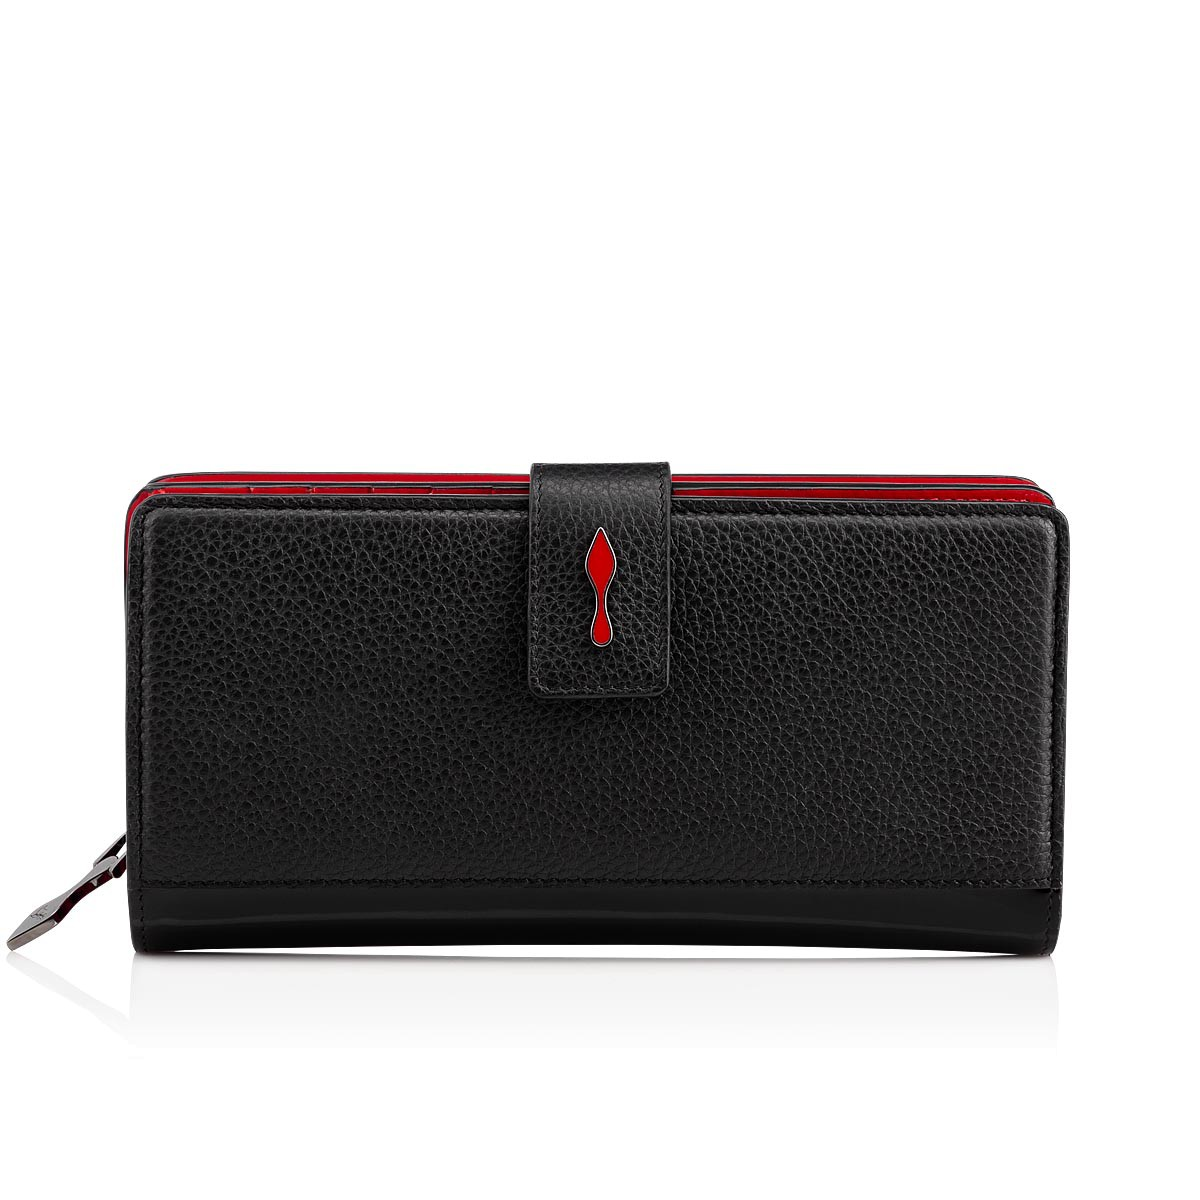 d93238632456 ... Small Leather Goods - Paloma Wallet - Christian Louboutin ...